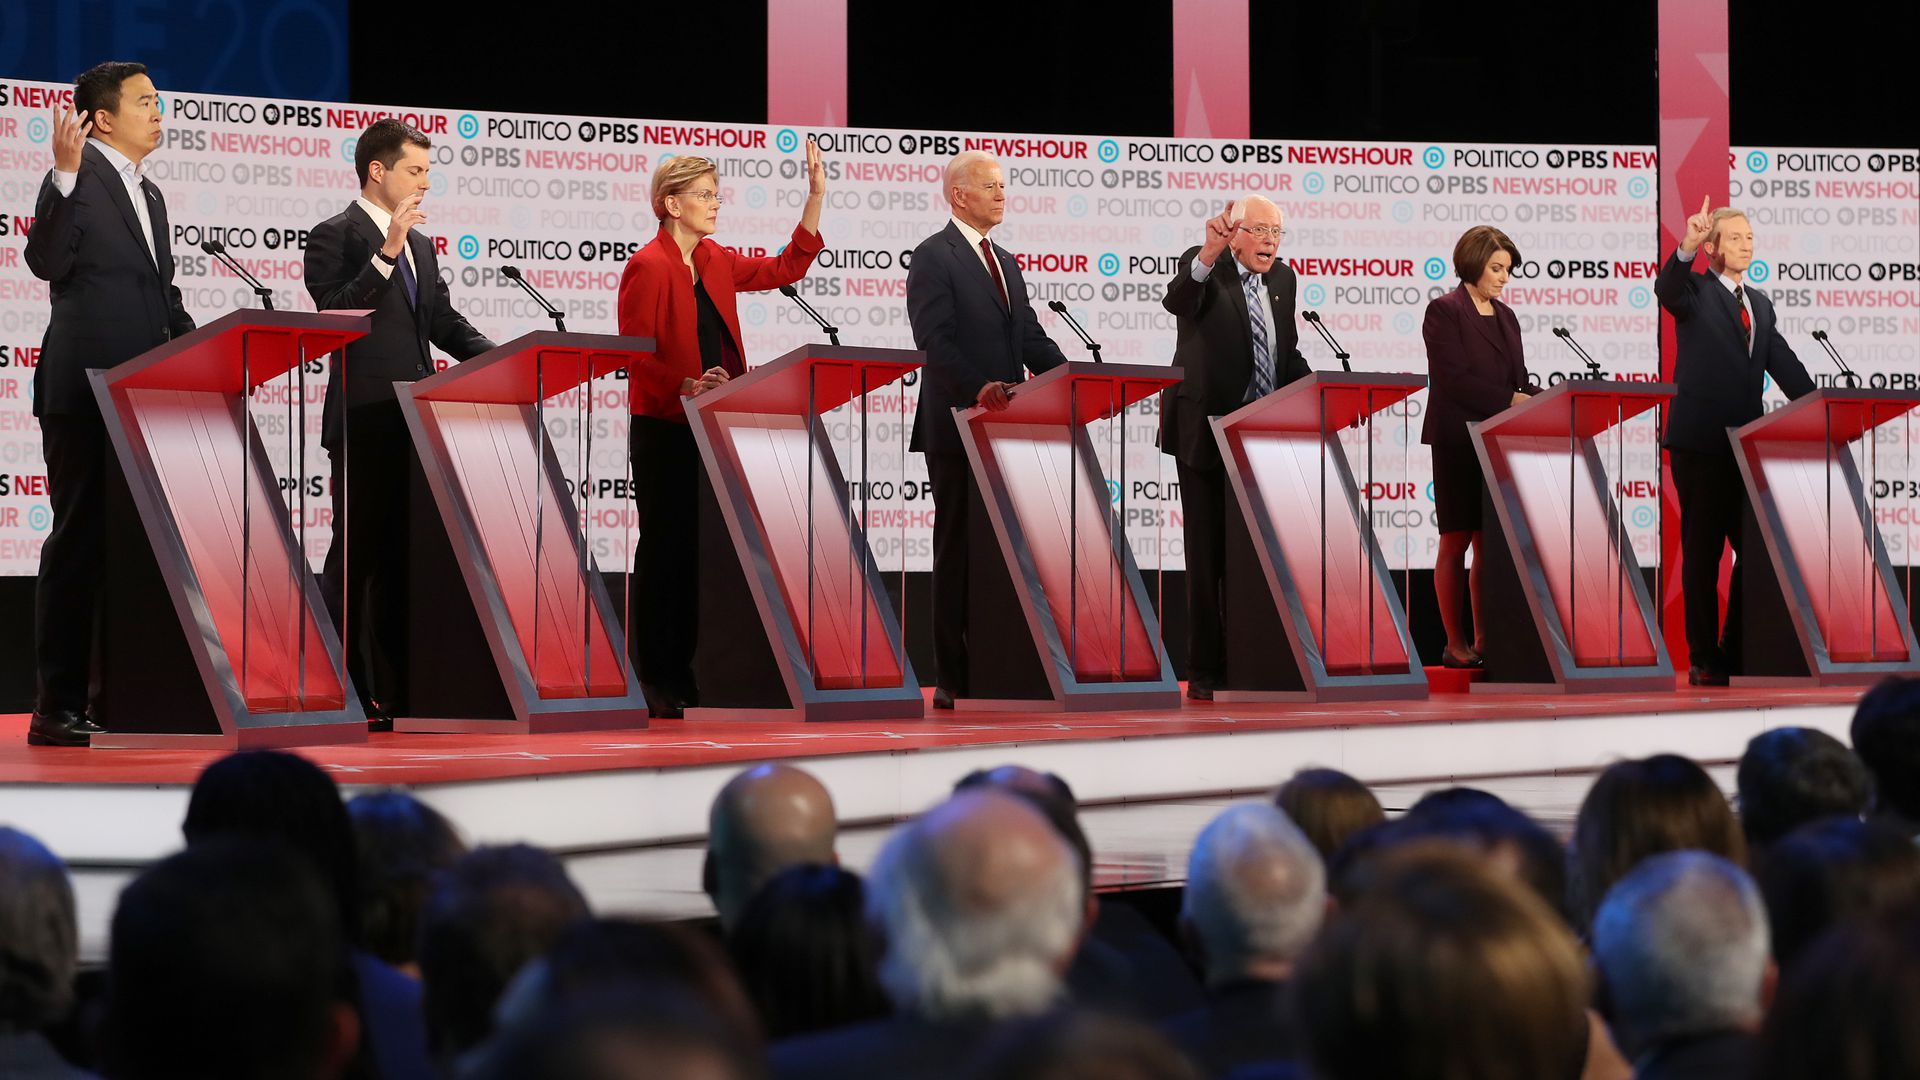 Candidates at their podiums during the debate.